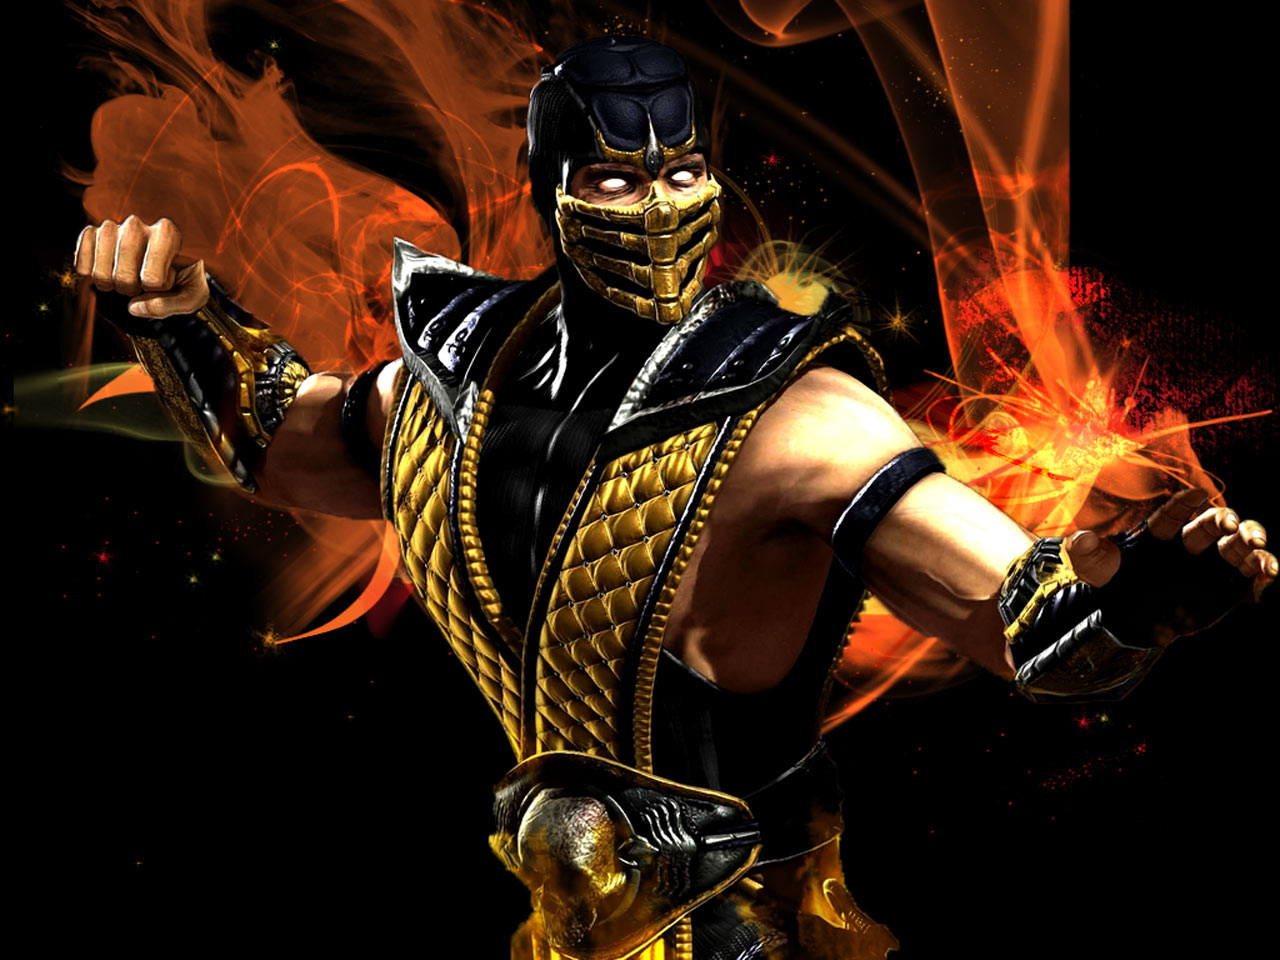 image - mortal-kombat-scorpion-1280x960-wallpaper | mortal